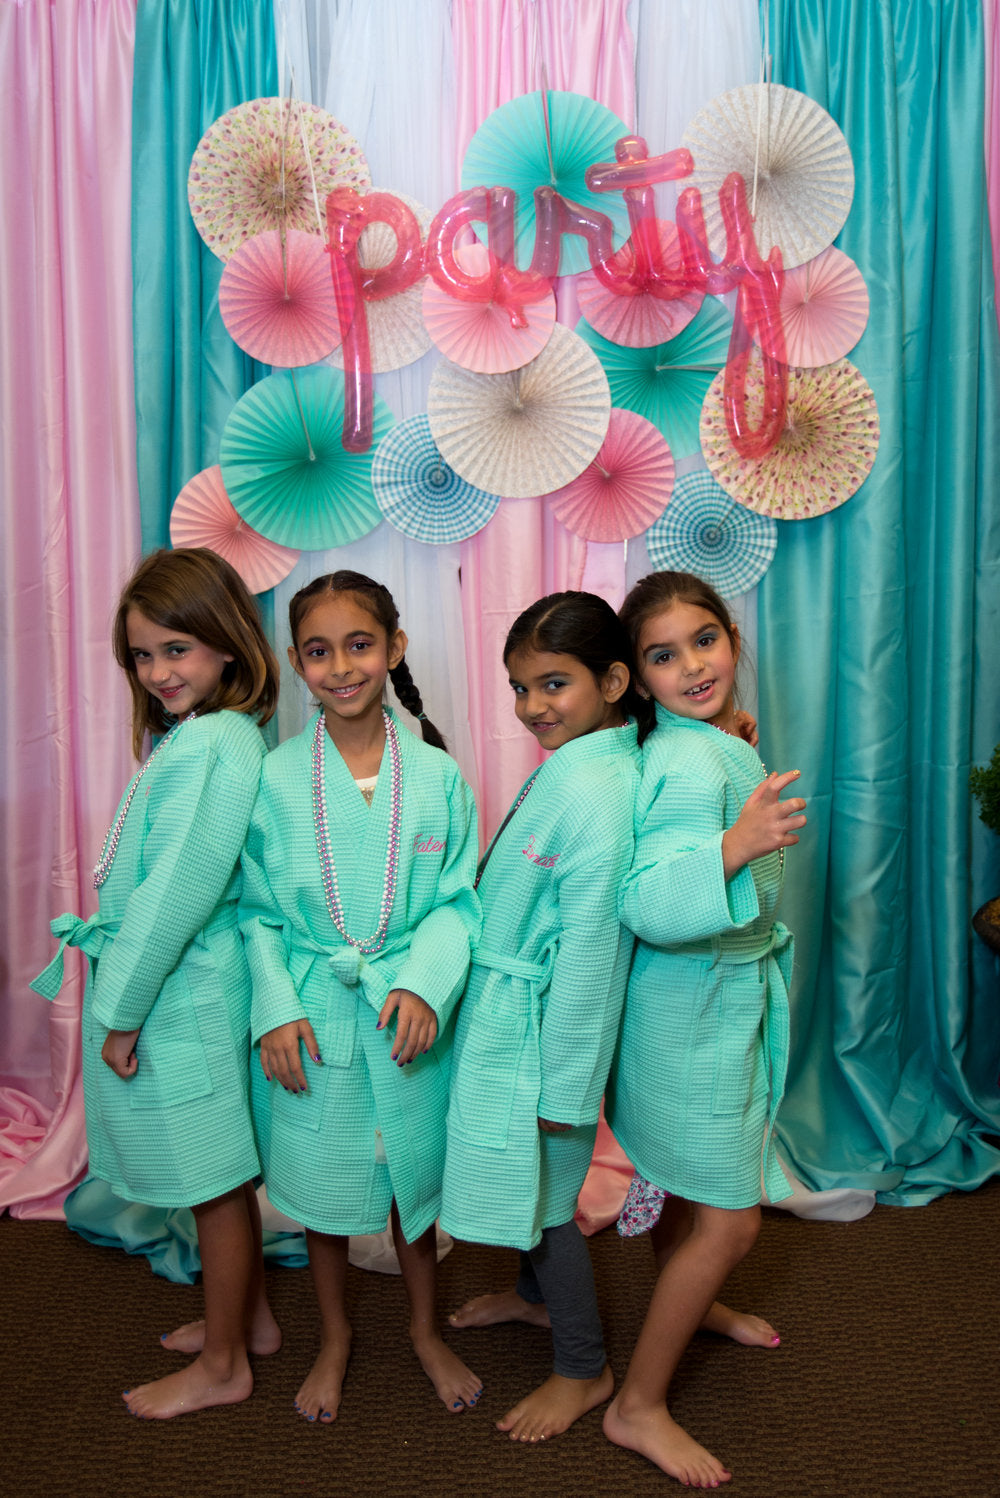 4 birthday party attendees in spa robes posing in front of party wall decorations